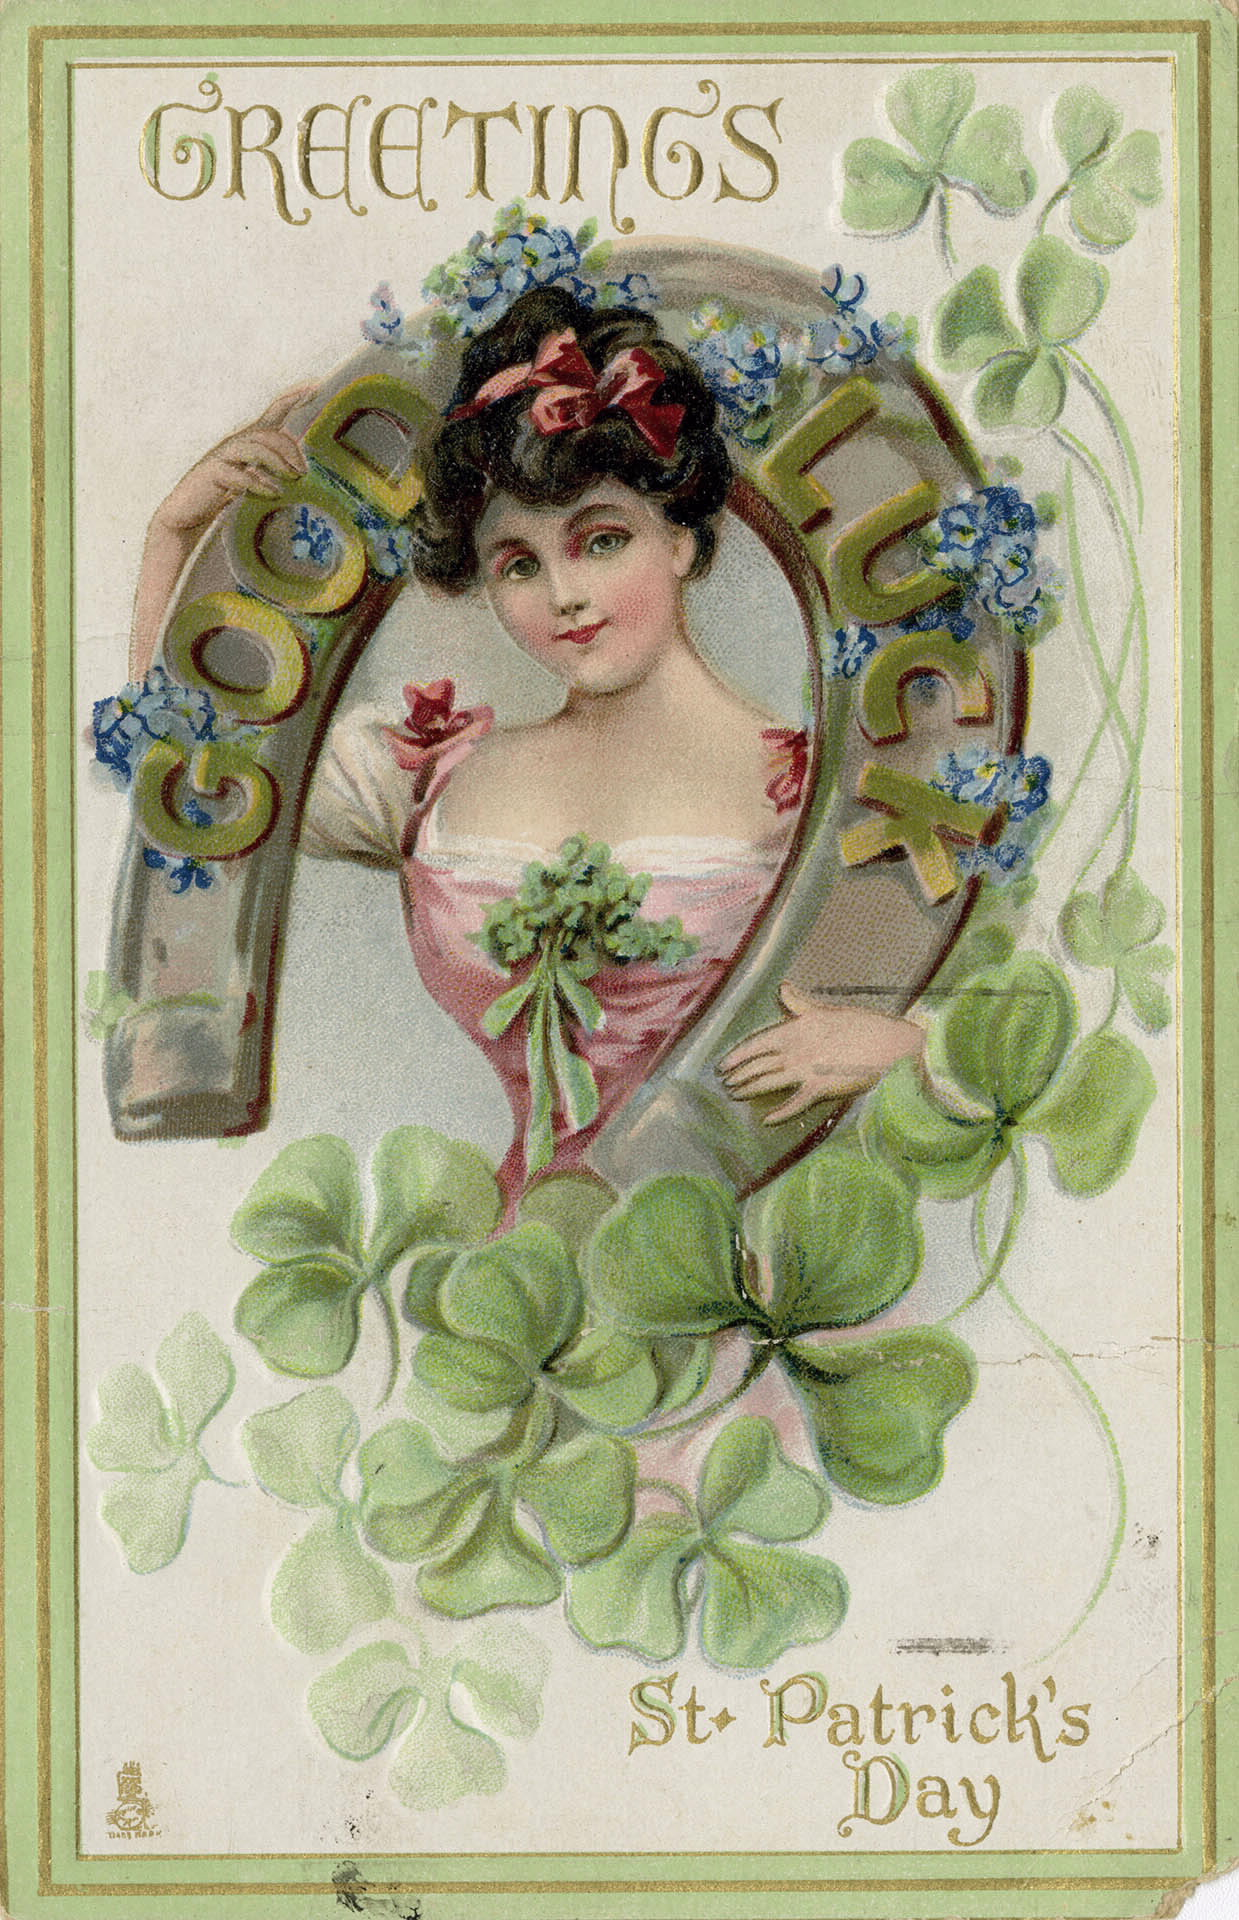 St._Patrick's_Day_card,_1916